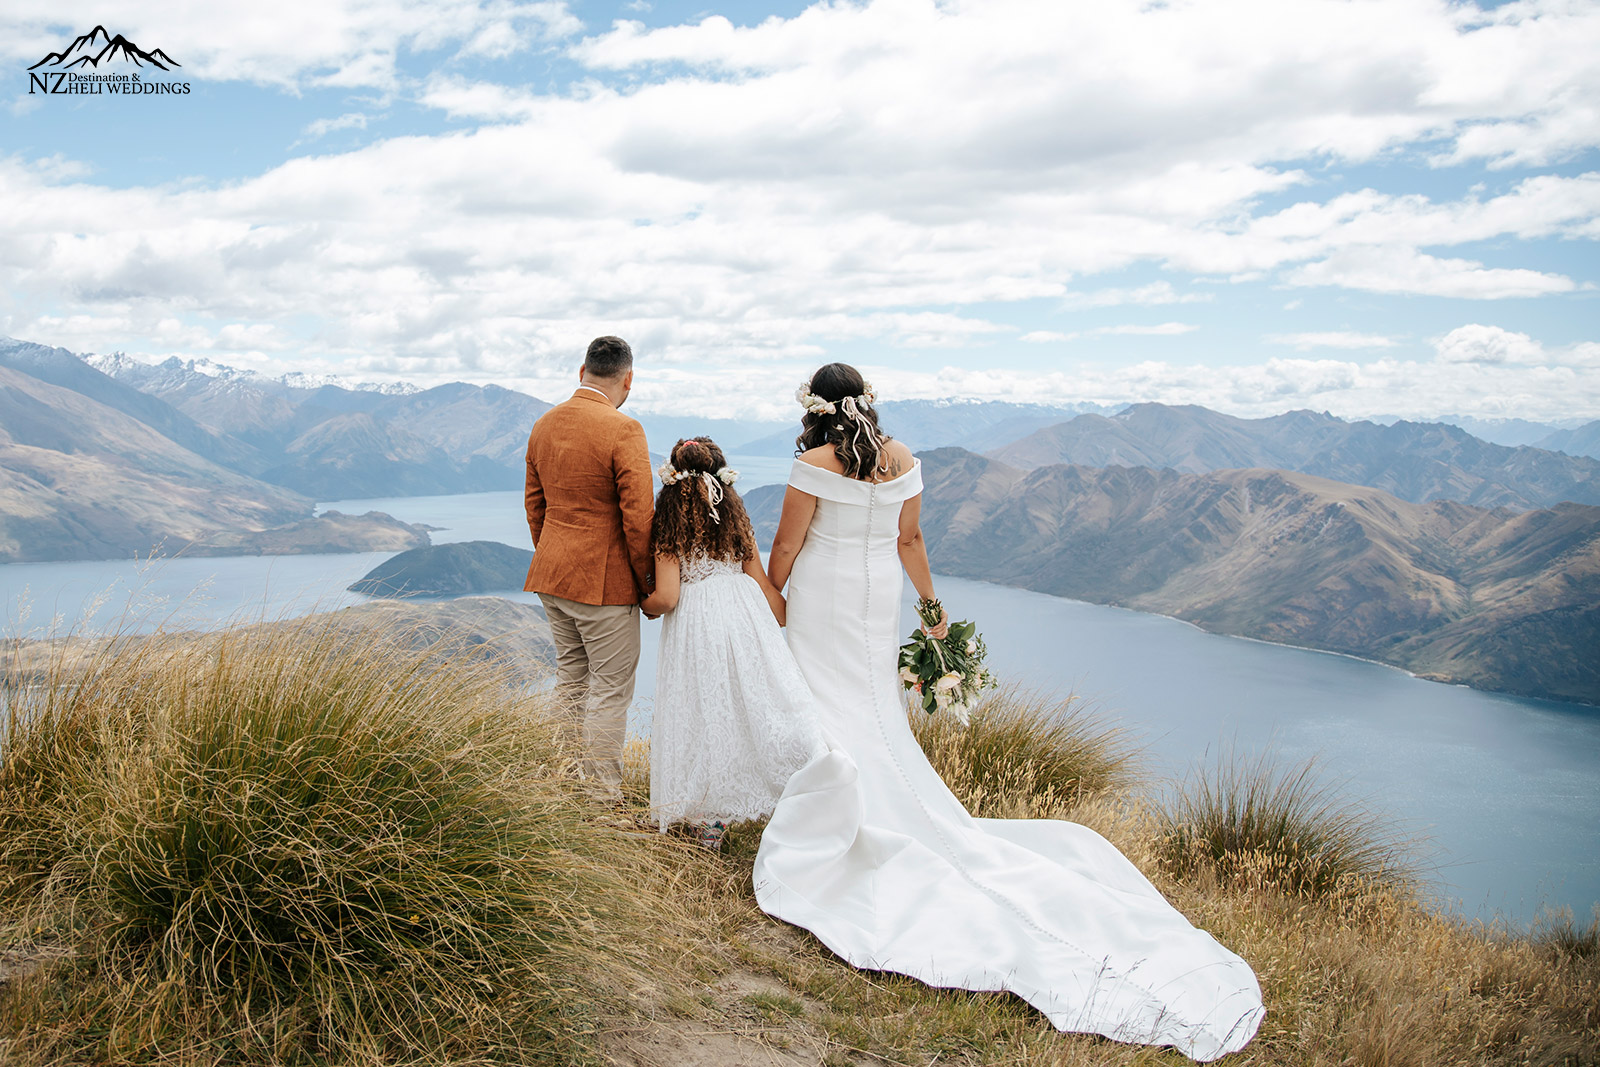 Intimate family wedding on Coromandel Peak